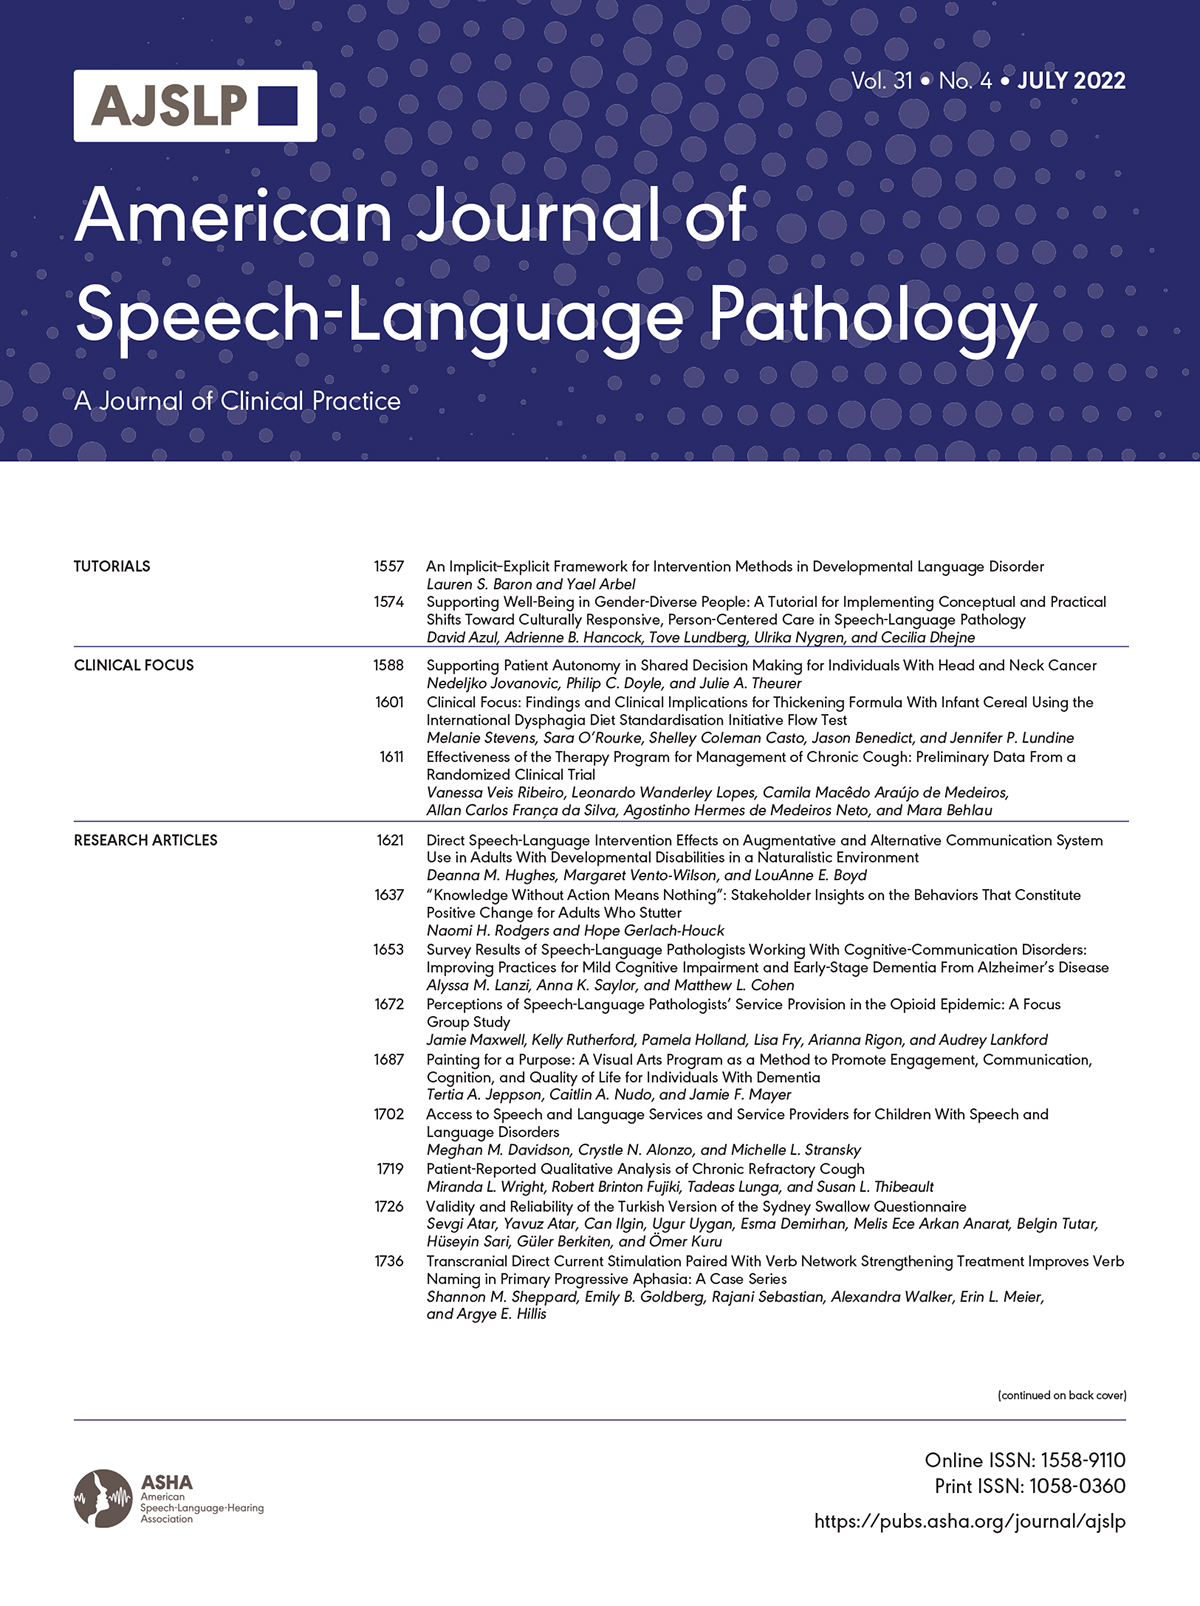 Speech Fluency in Acquired Apraxia of Speech During Narrative